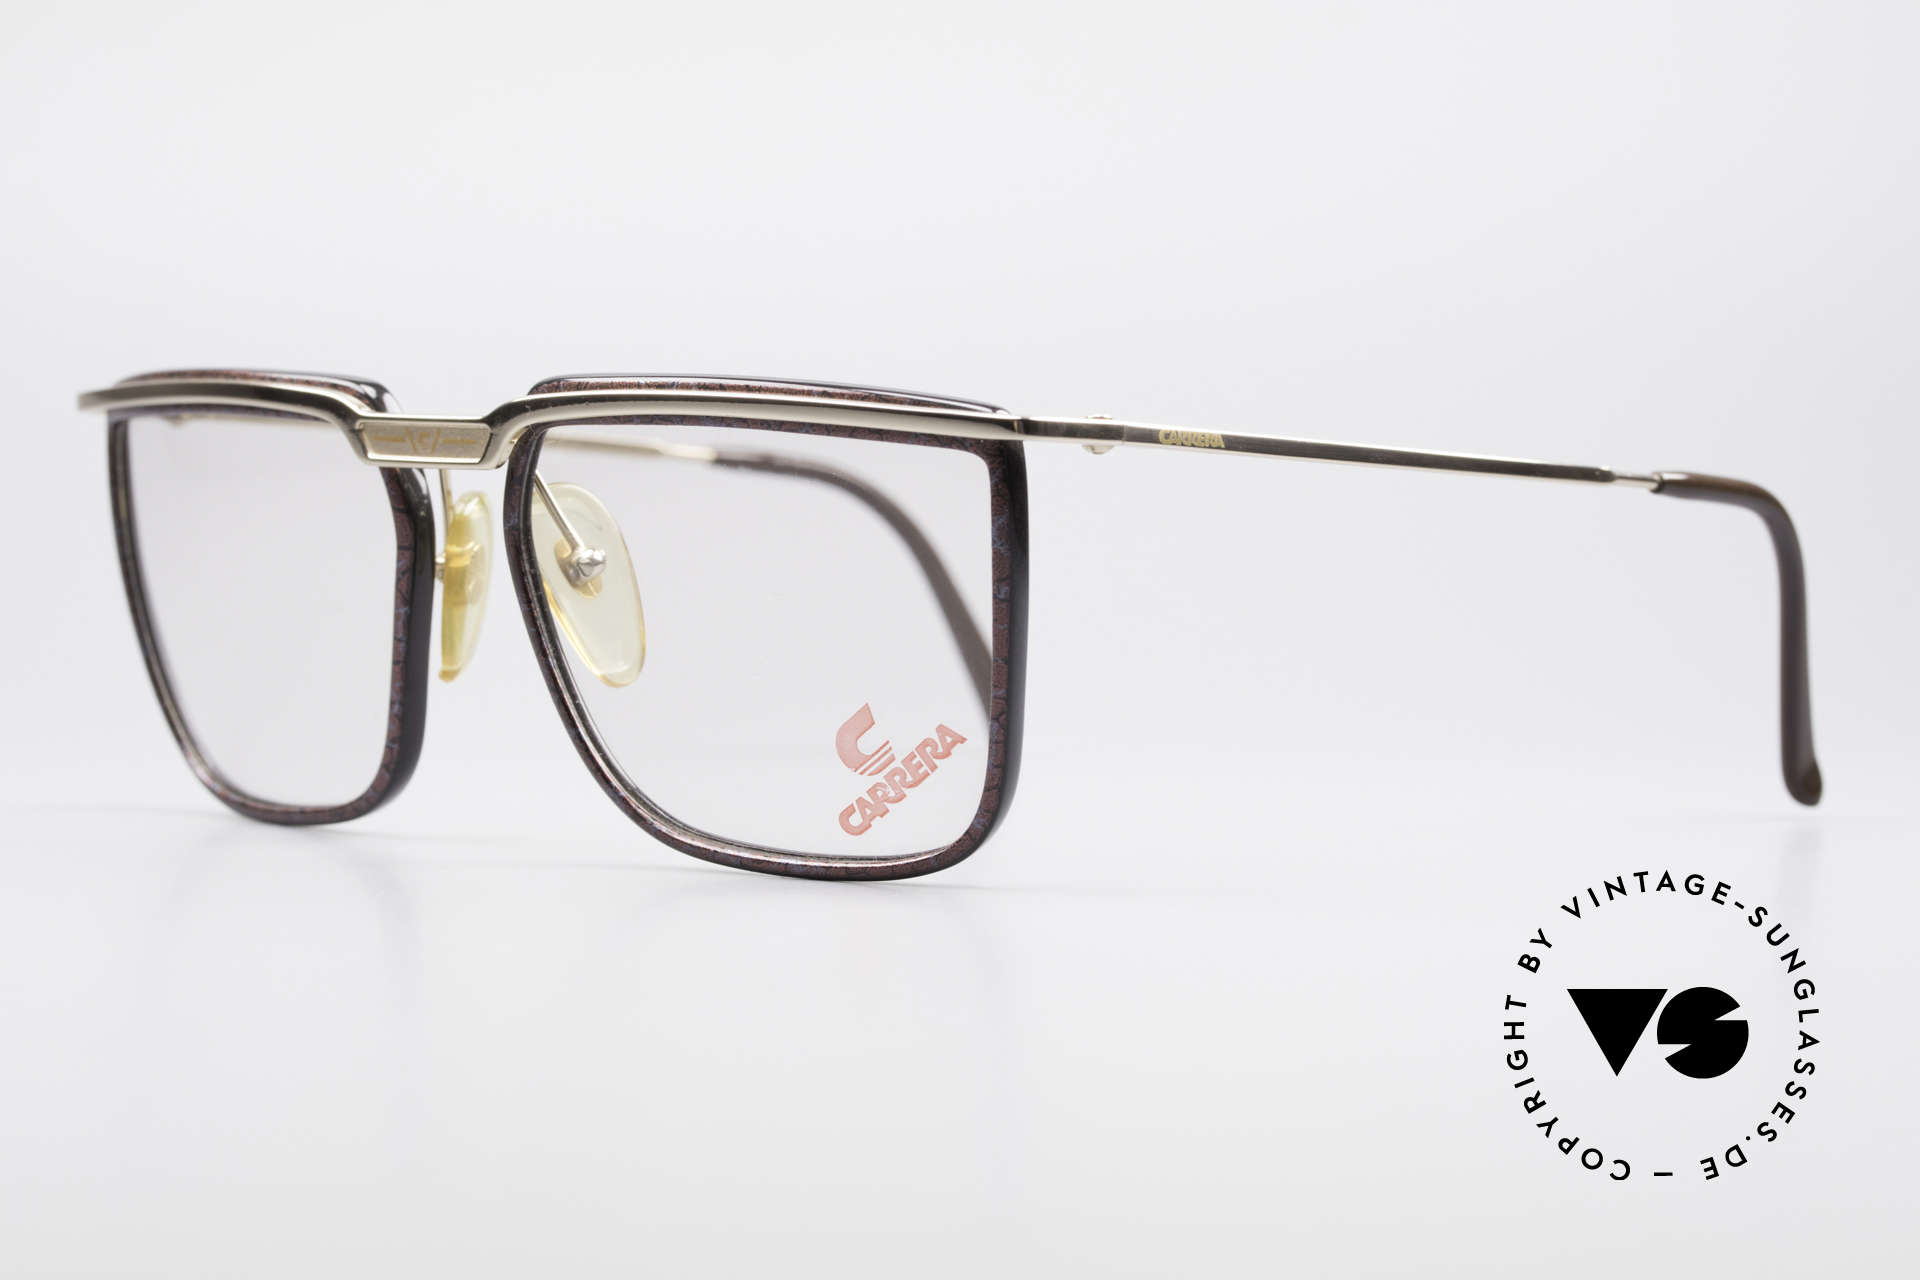 Carrera 5376 Square Vintage Carbon Frame, lightweight and accordingly pleasant to wear!, Made for Men